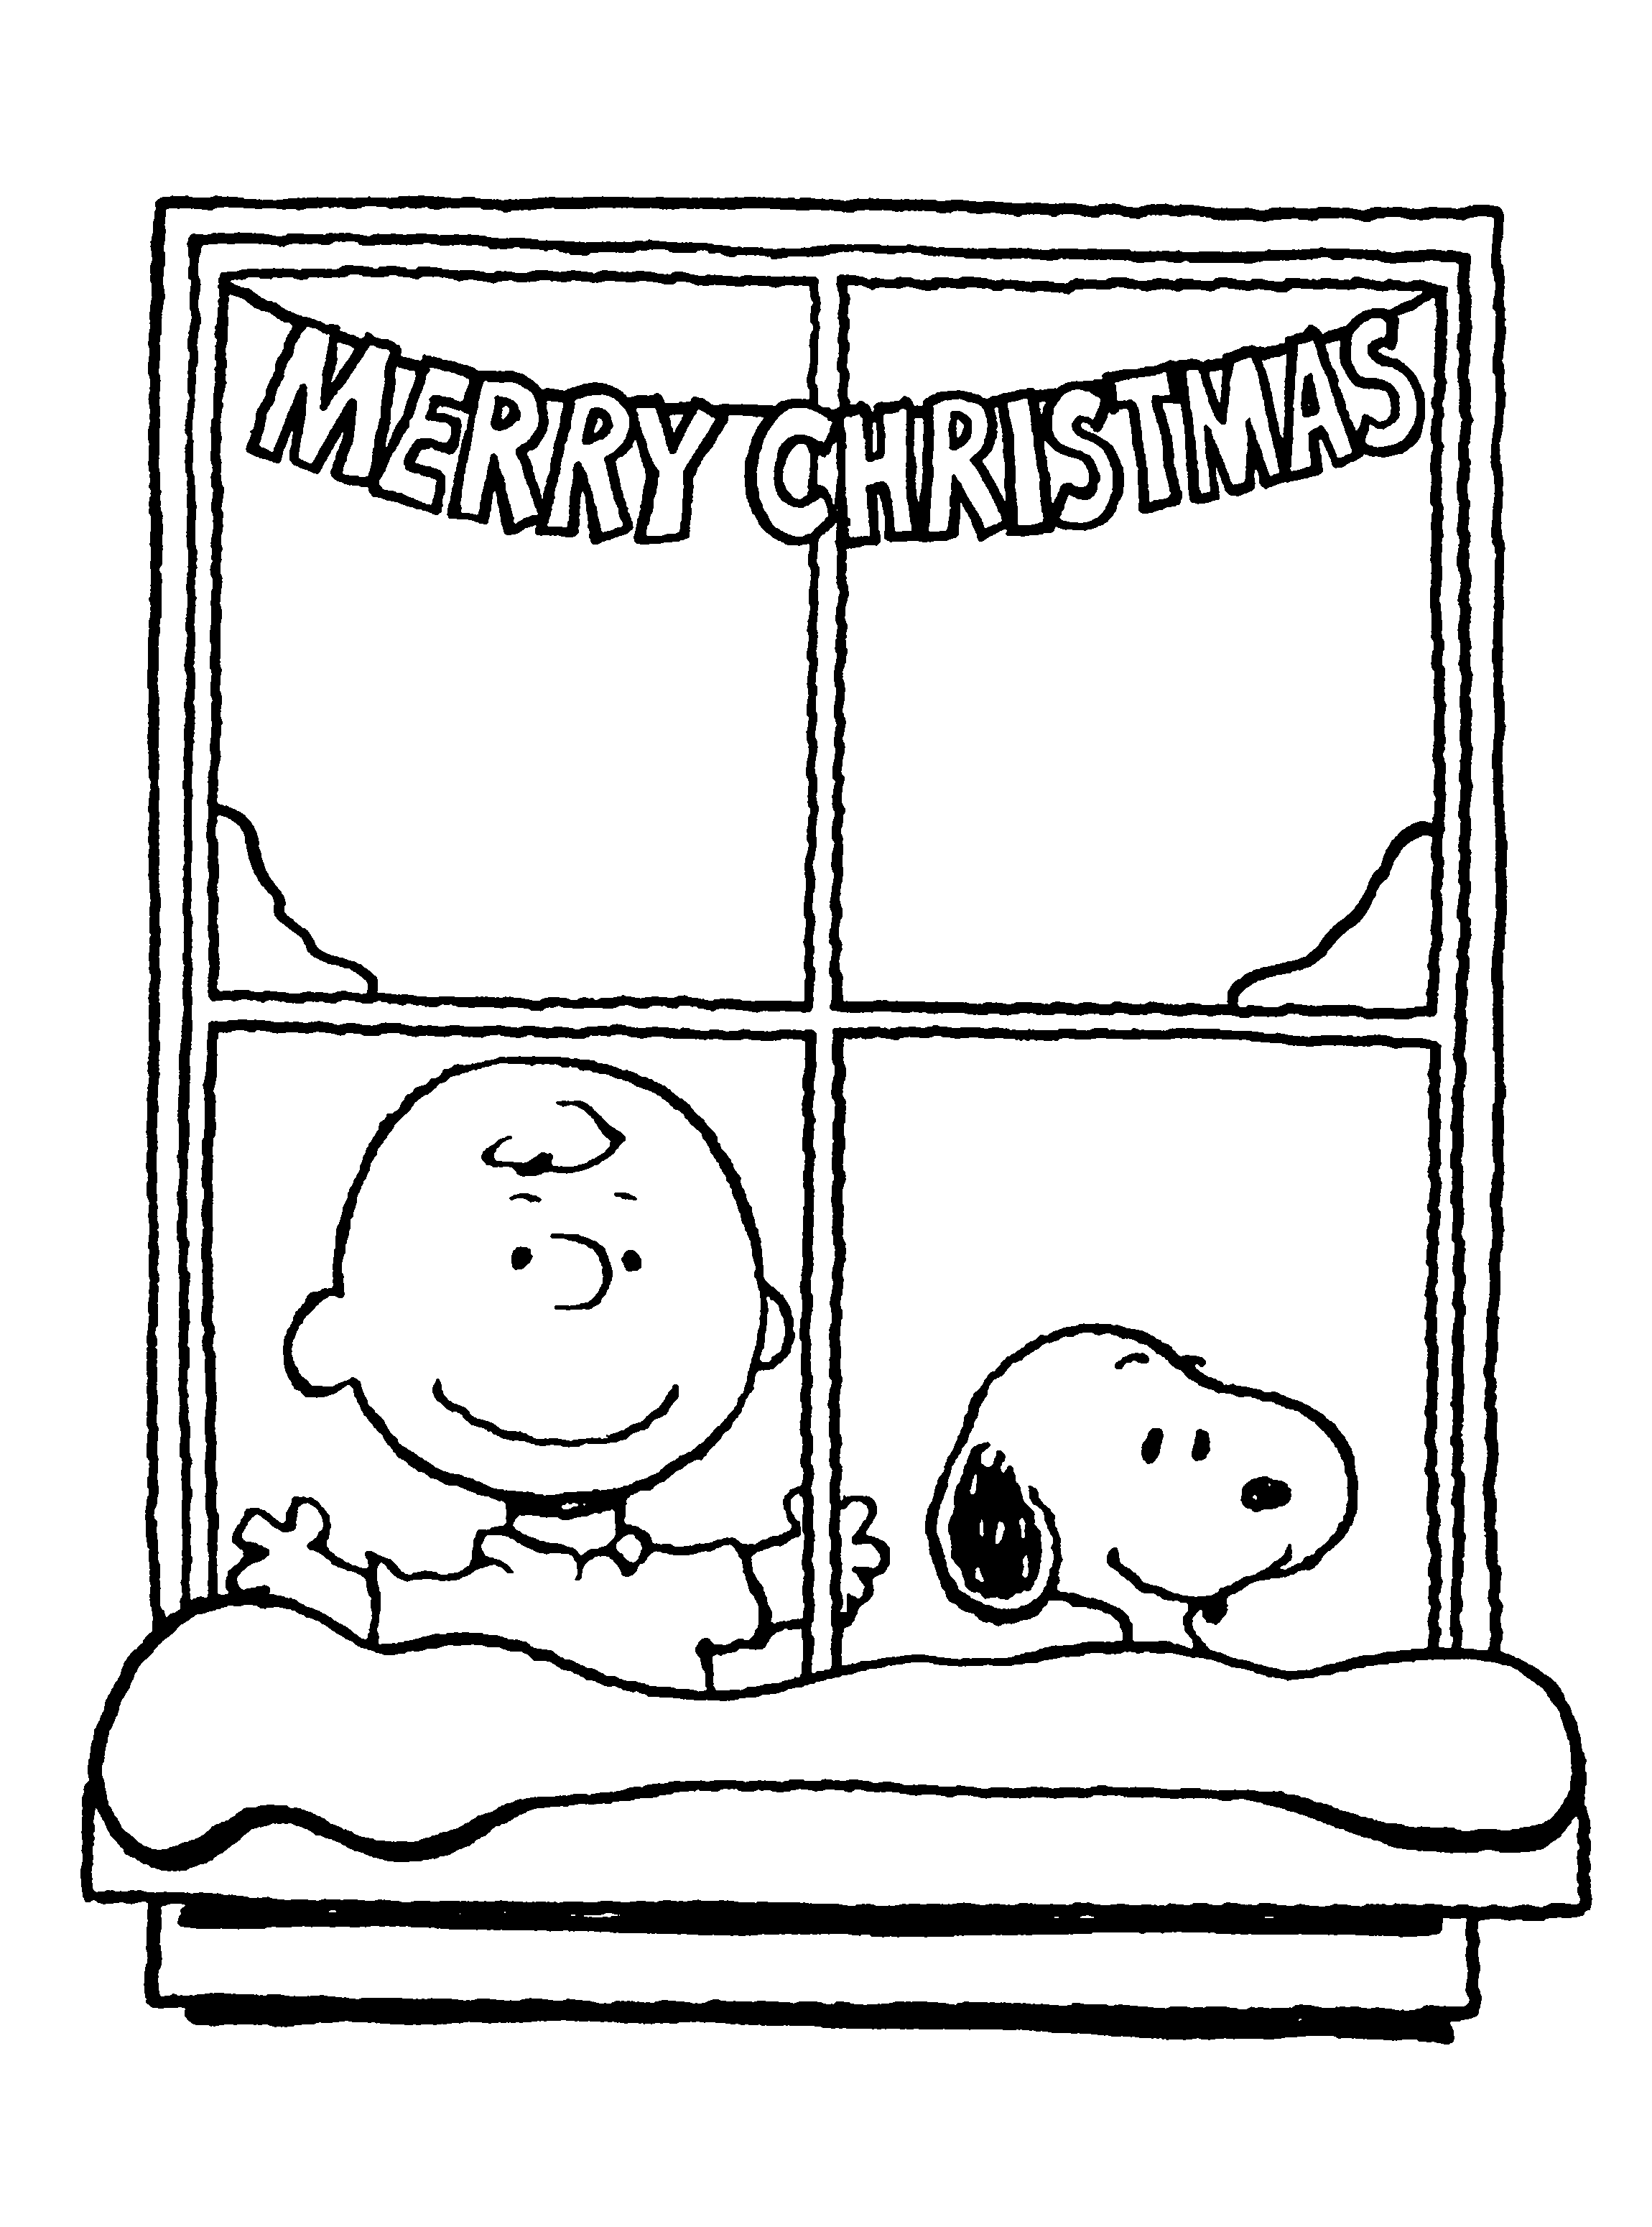 Charlie Brown en Snoopy | Snoopy | Pinterest | Kerst, Snoopy and ...